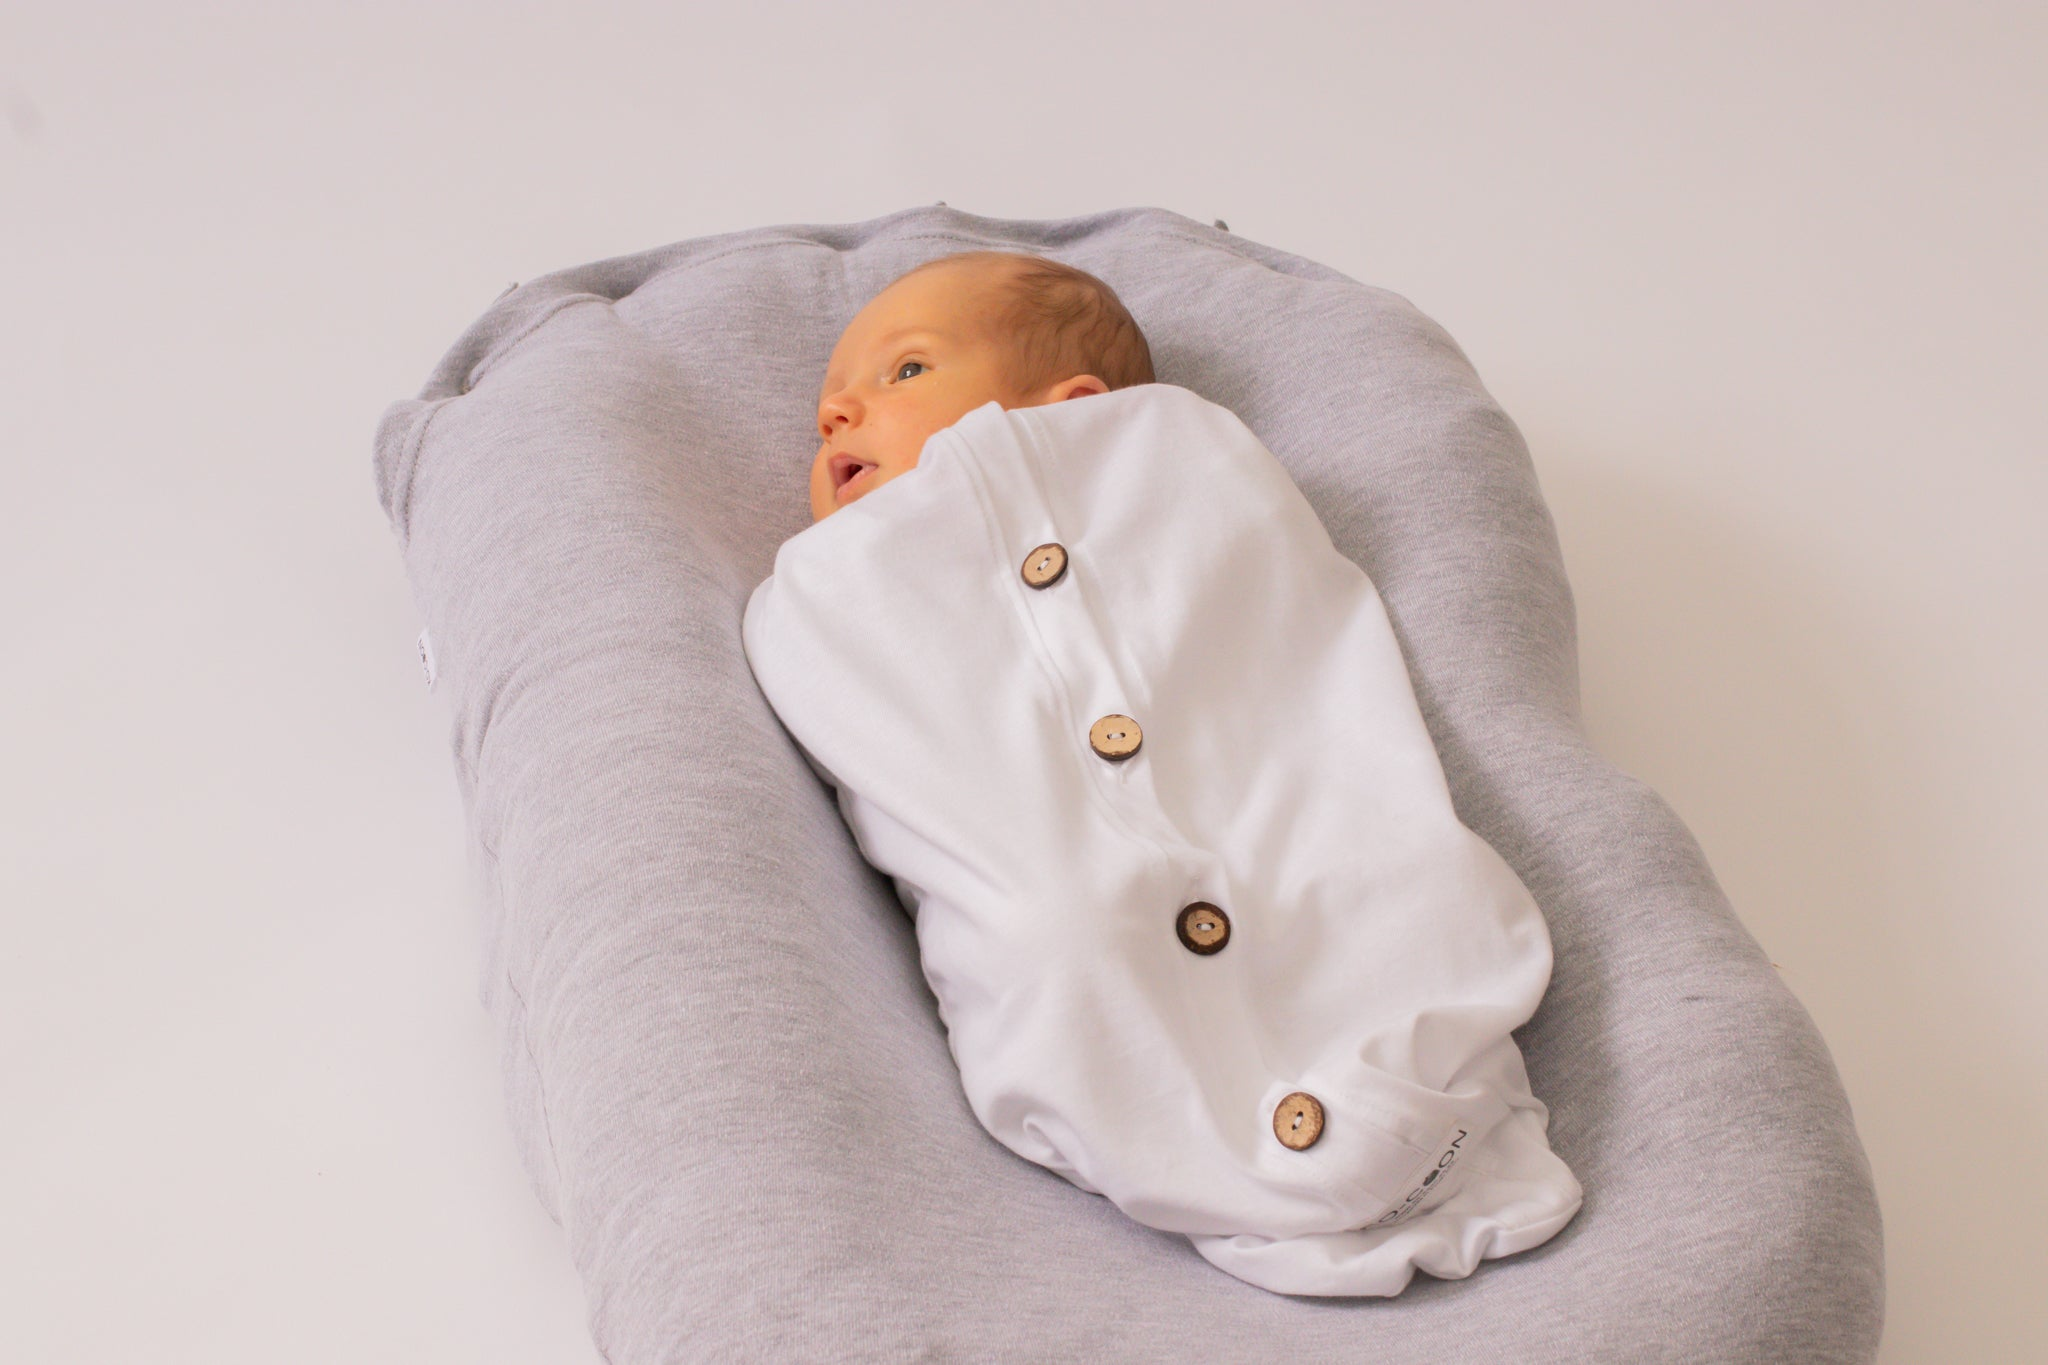 Merino Wool Nesting Pod 3-in-1 with Marl Grey covers (lead time 2-3 weeks)